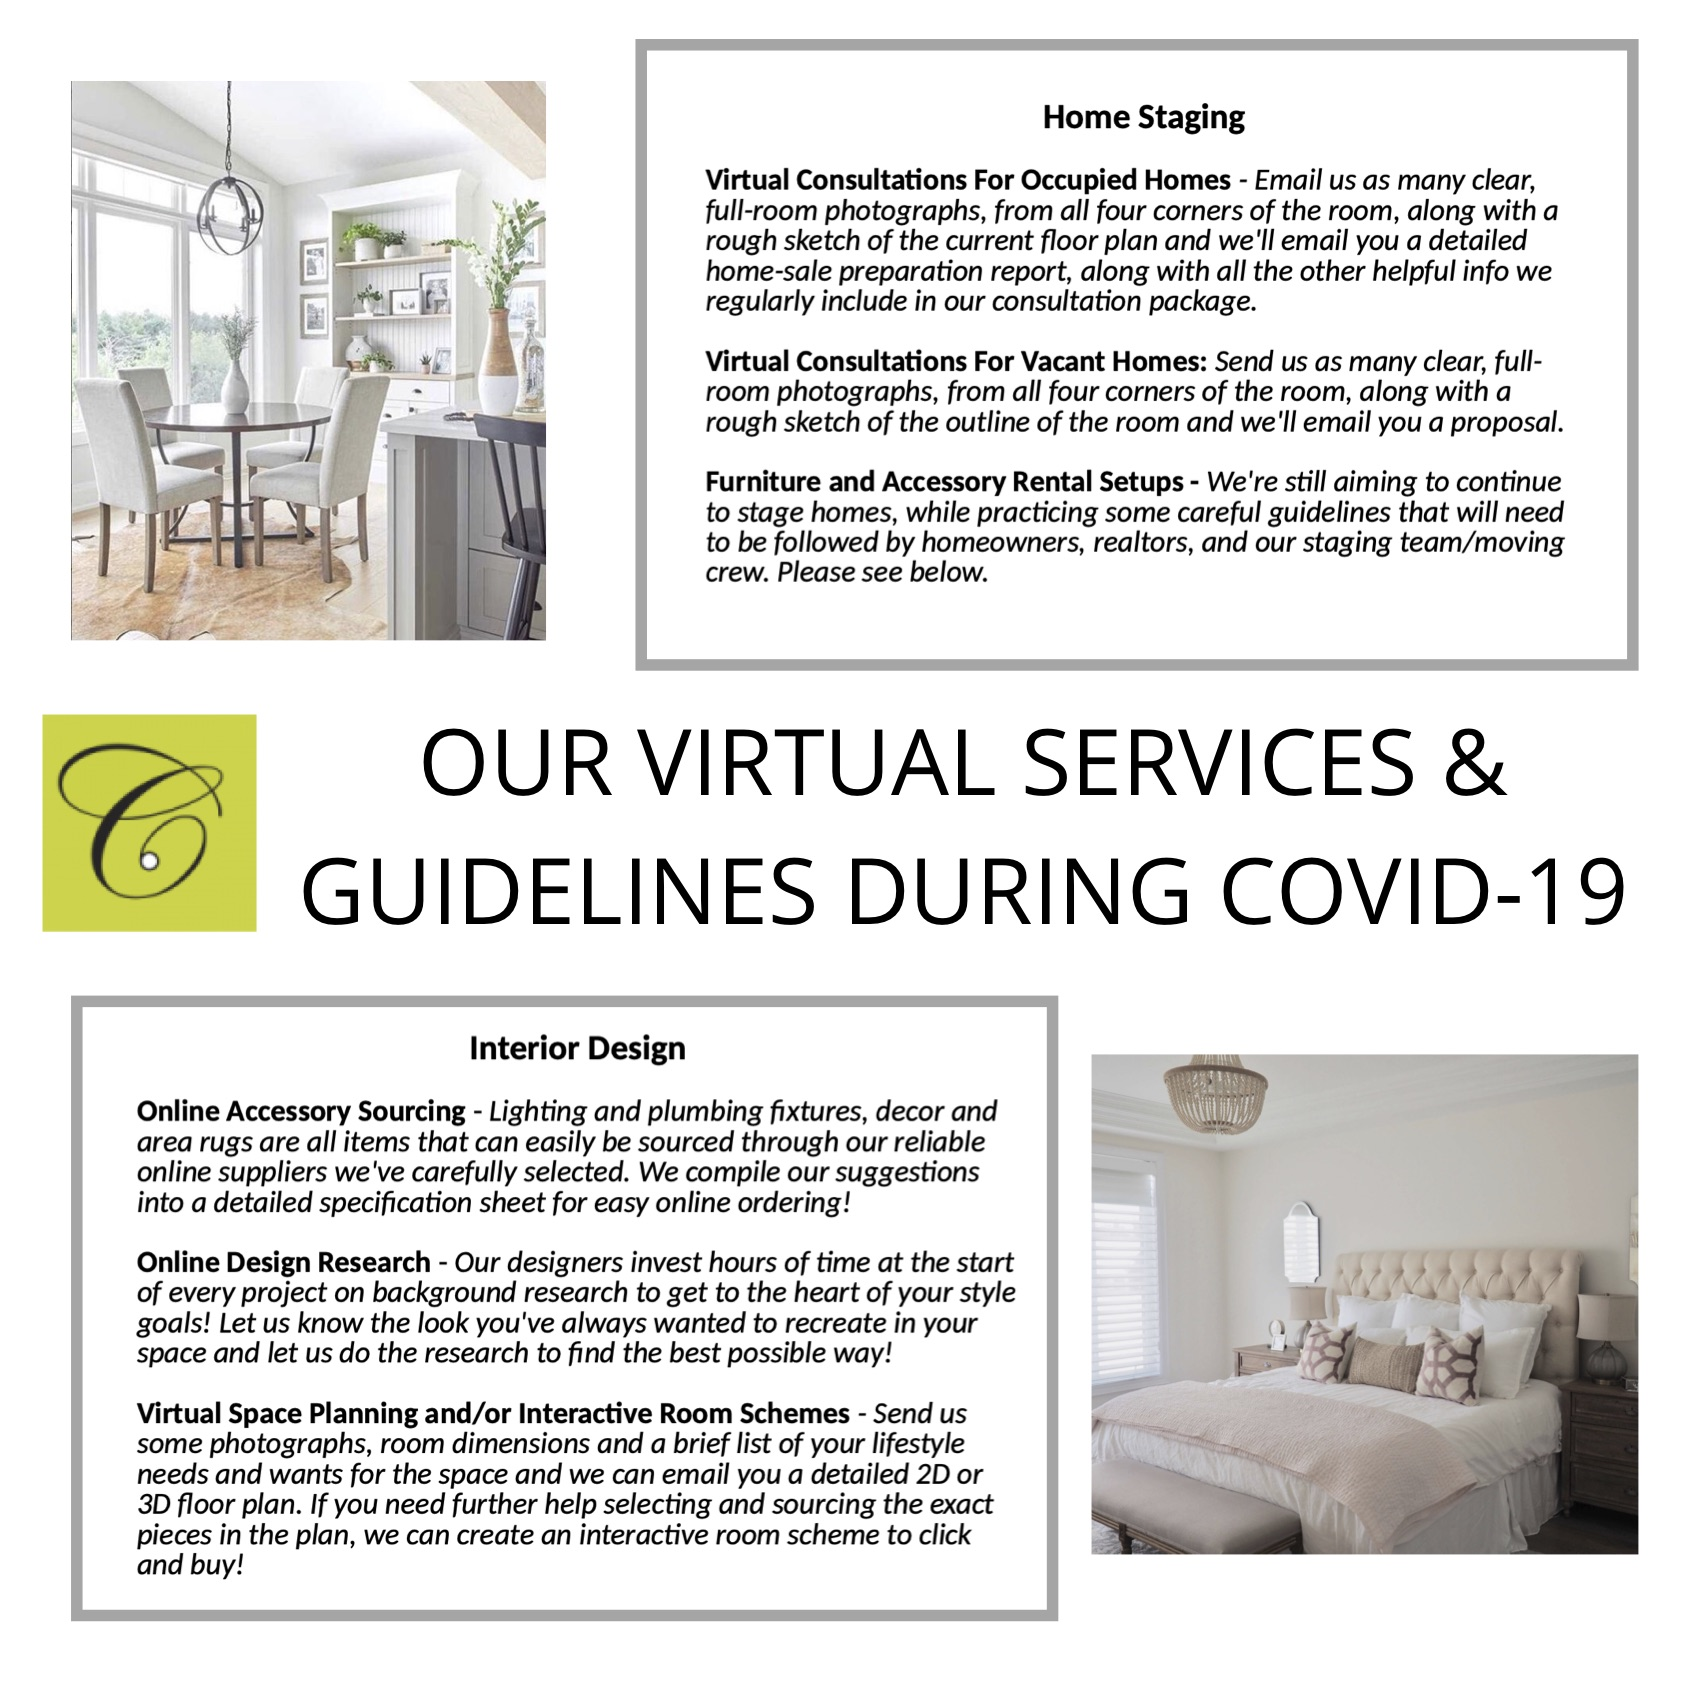 Home Staging and Interior Design Safety during Covid-19